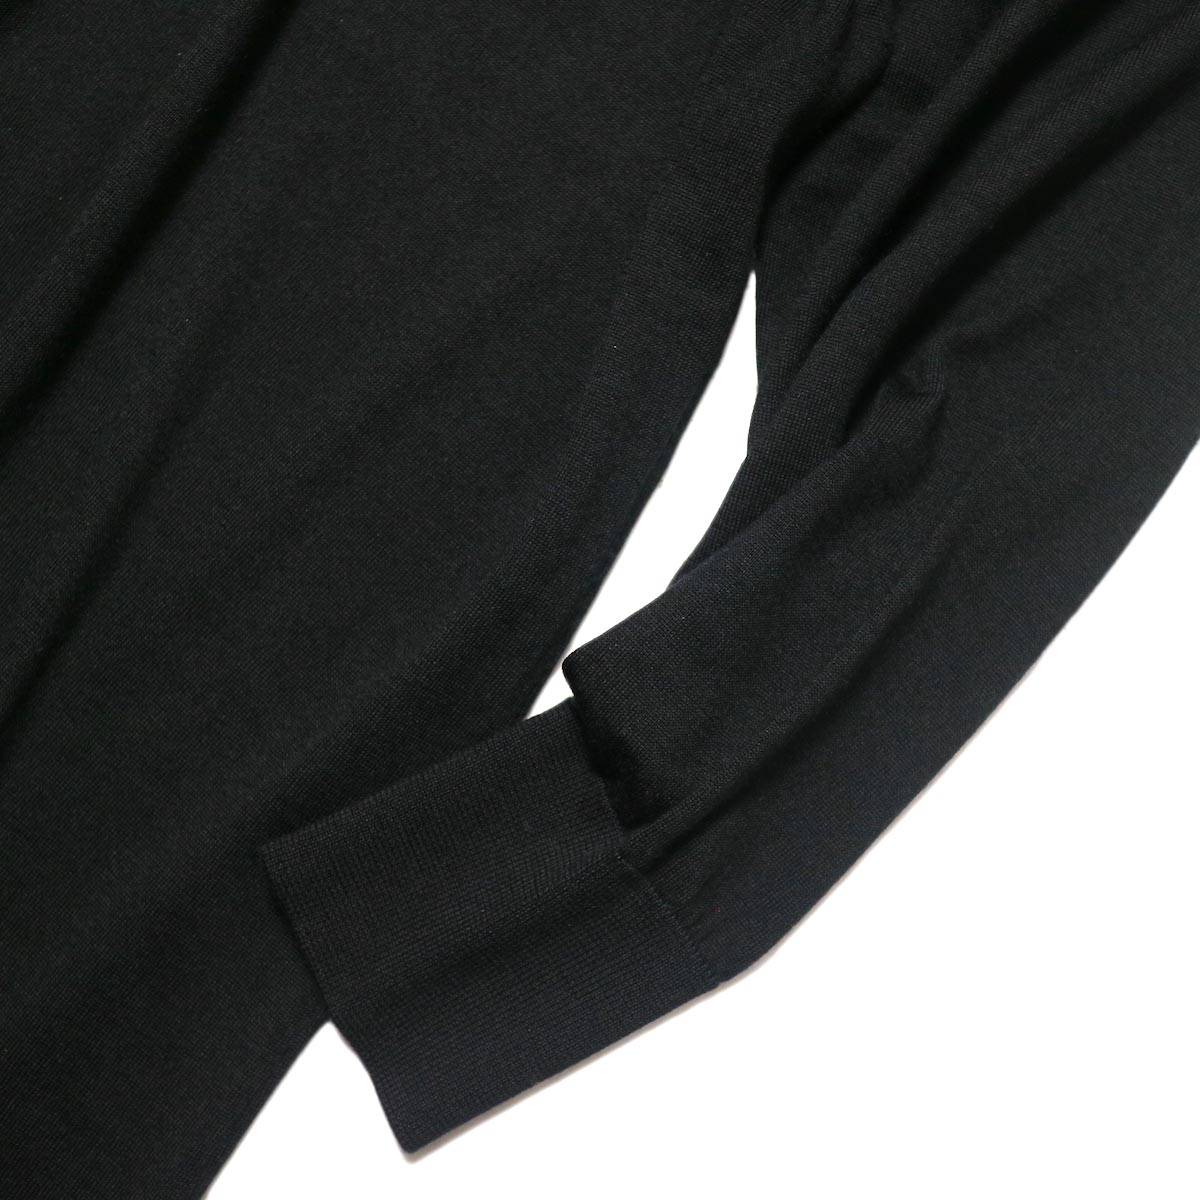 YLEVE / WOOL SILK CASHMERE POLO KN OP (black) 袖・リブ